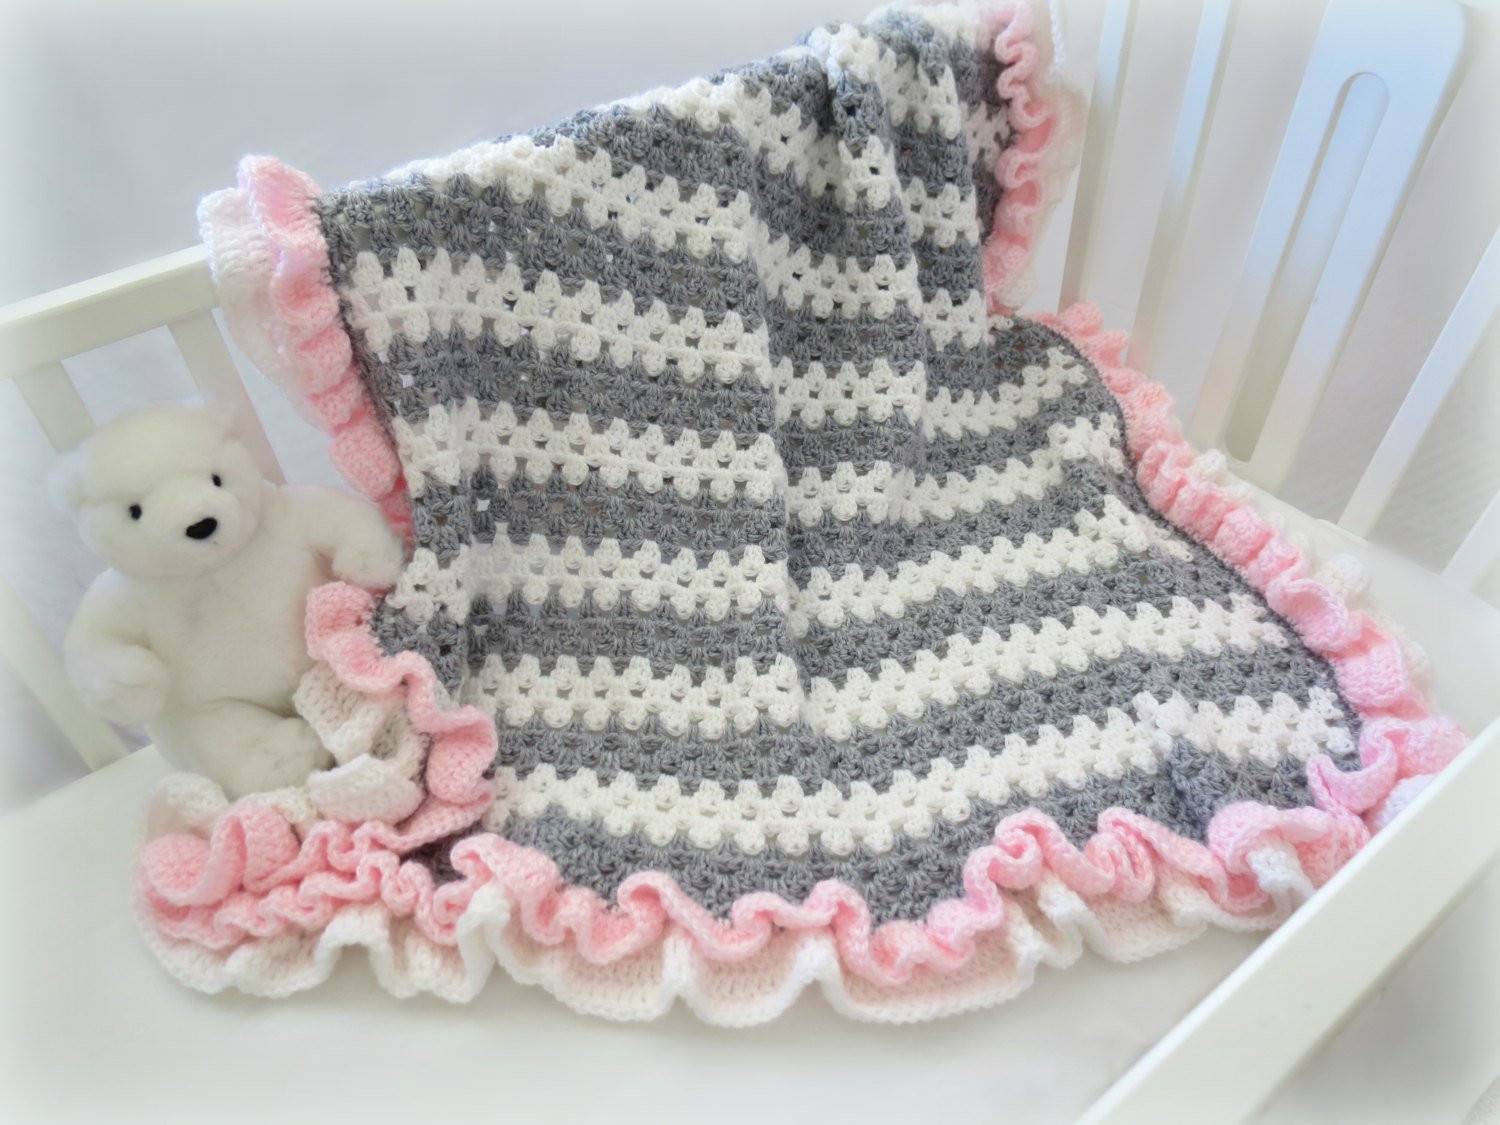 Baby Boy Crochet Blanket Patterns New Crochet Baby Blanket Pattern Baby Crochet Blanket Afghan Of Baby Boy Crochet Blanket Patterns Lovely Navy and Teal for A Baby Boy